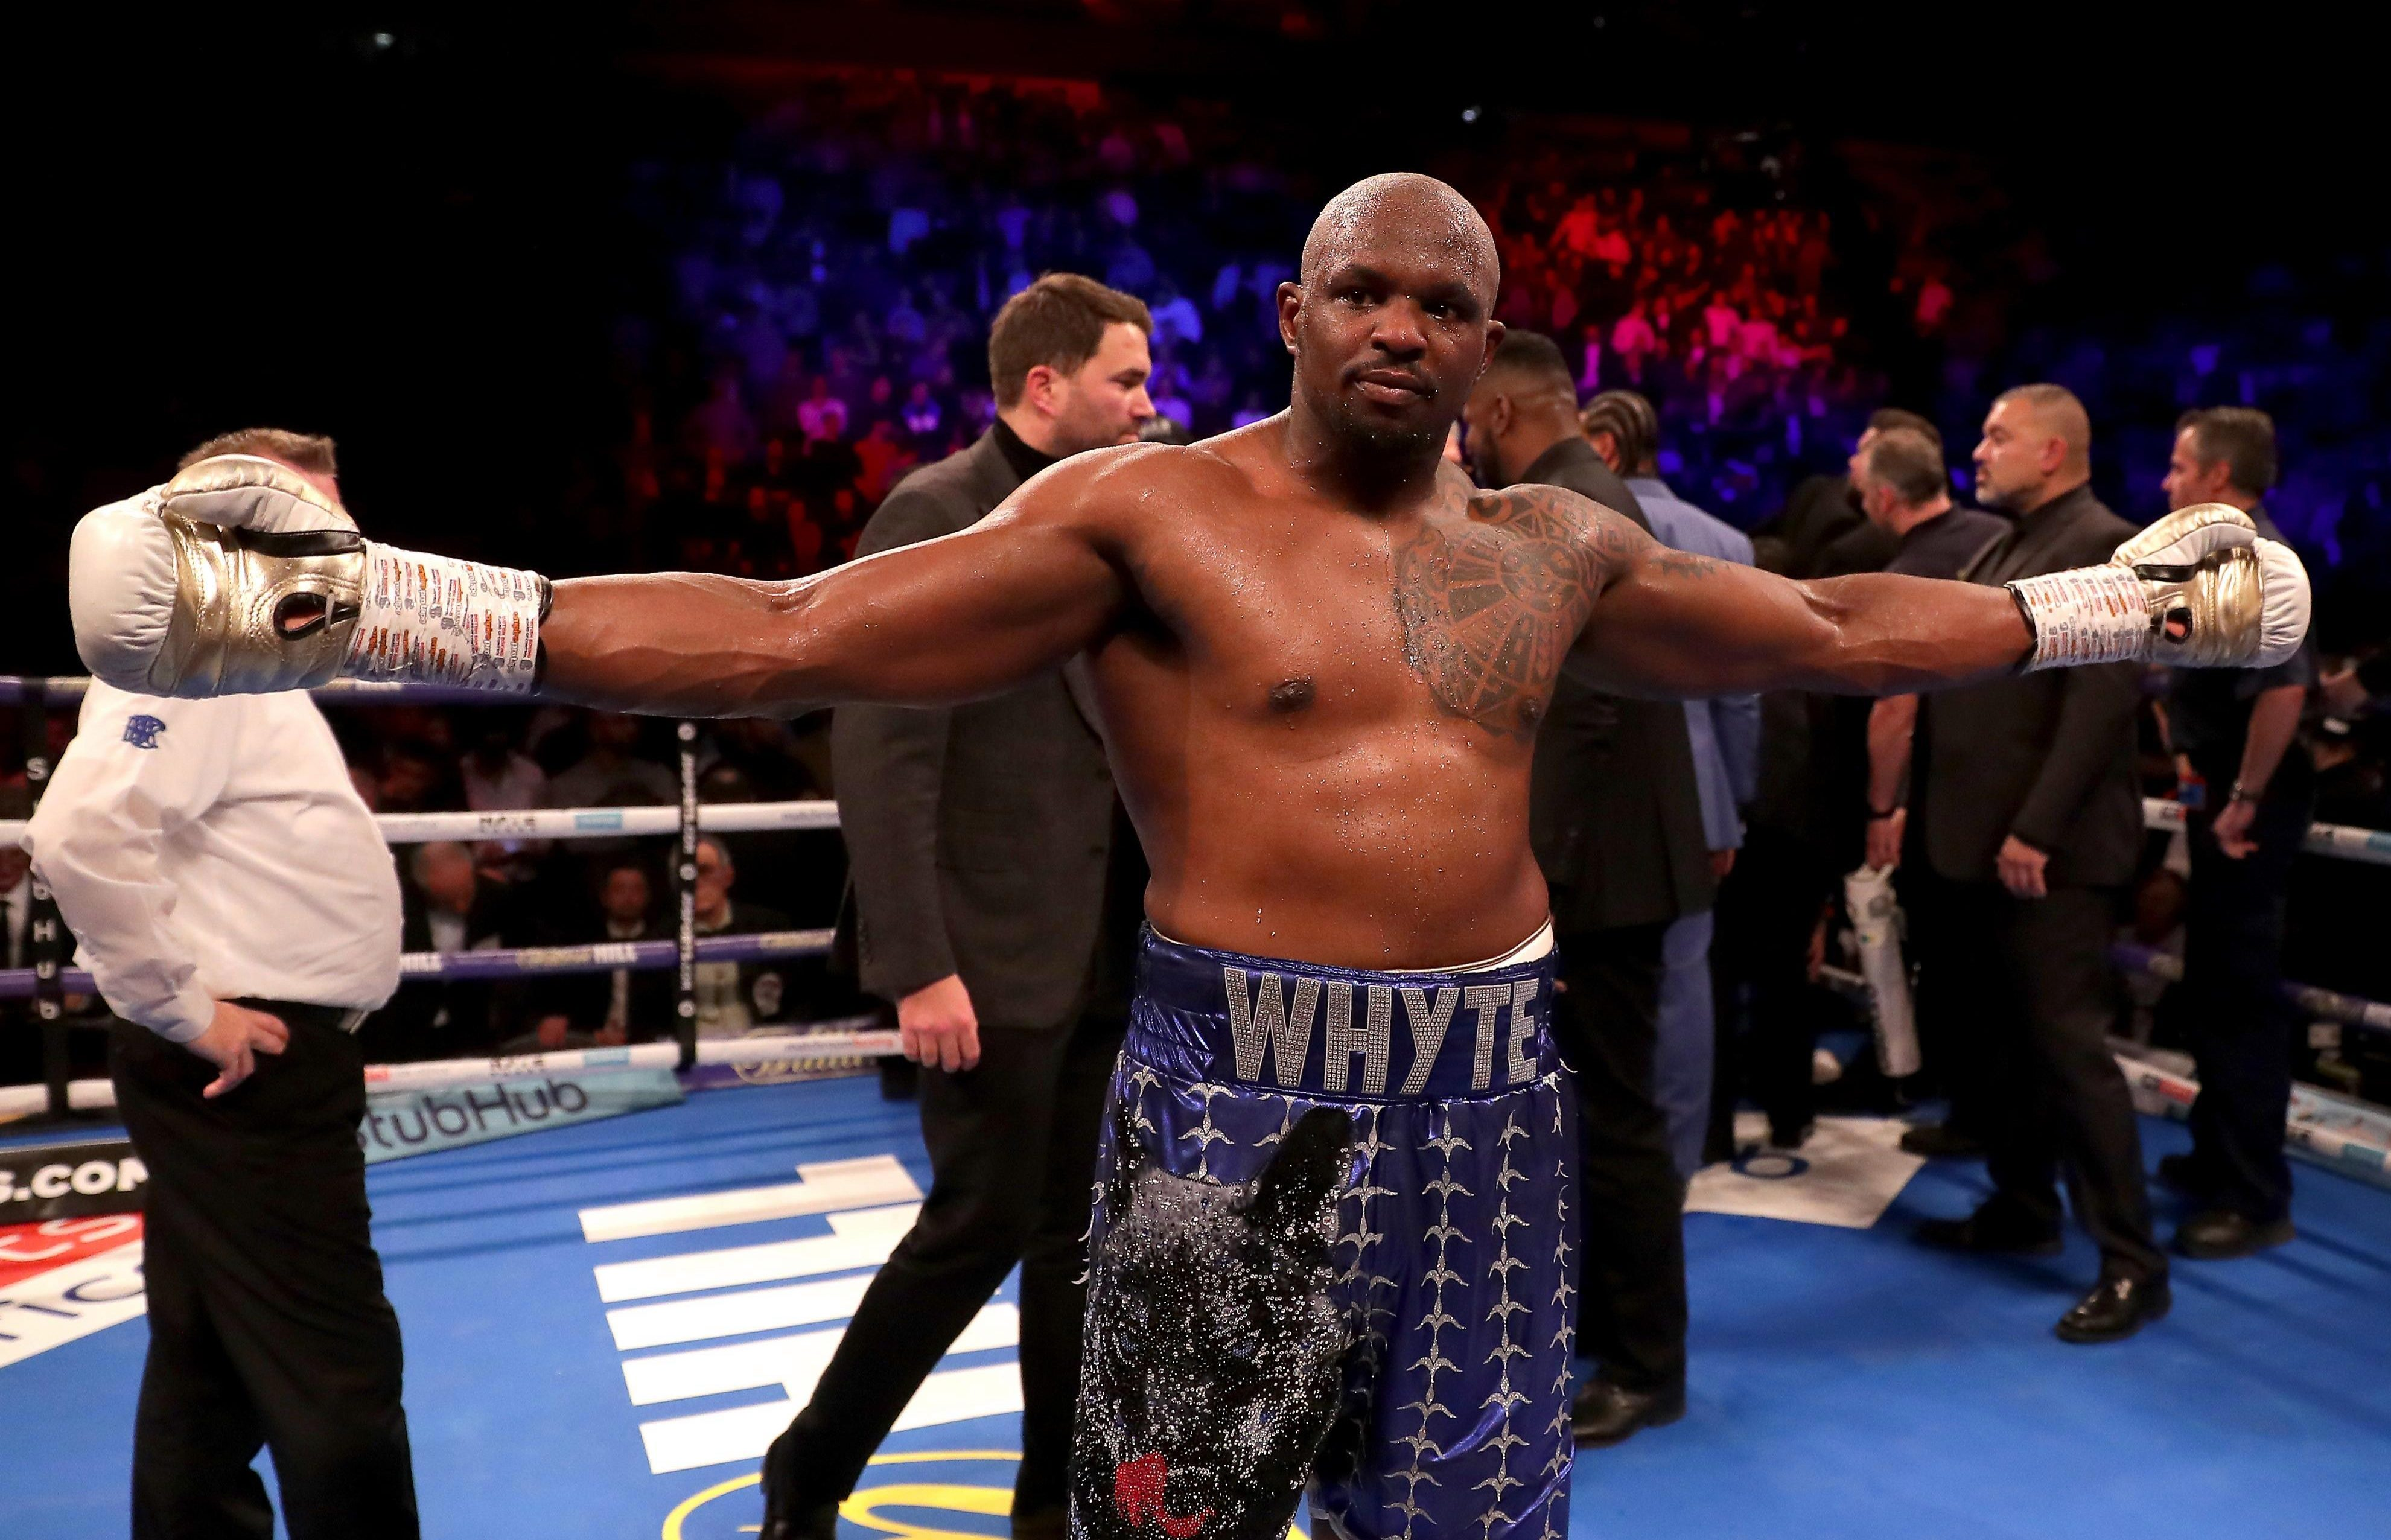 Dillian Whyte looks set to get another shot at Joshua after being knocked out in December 2015